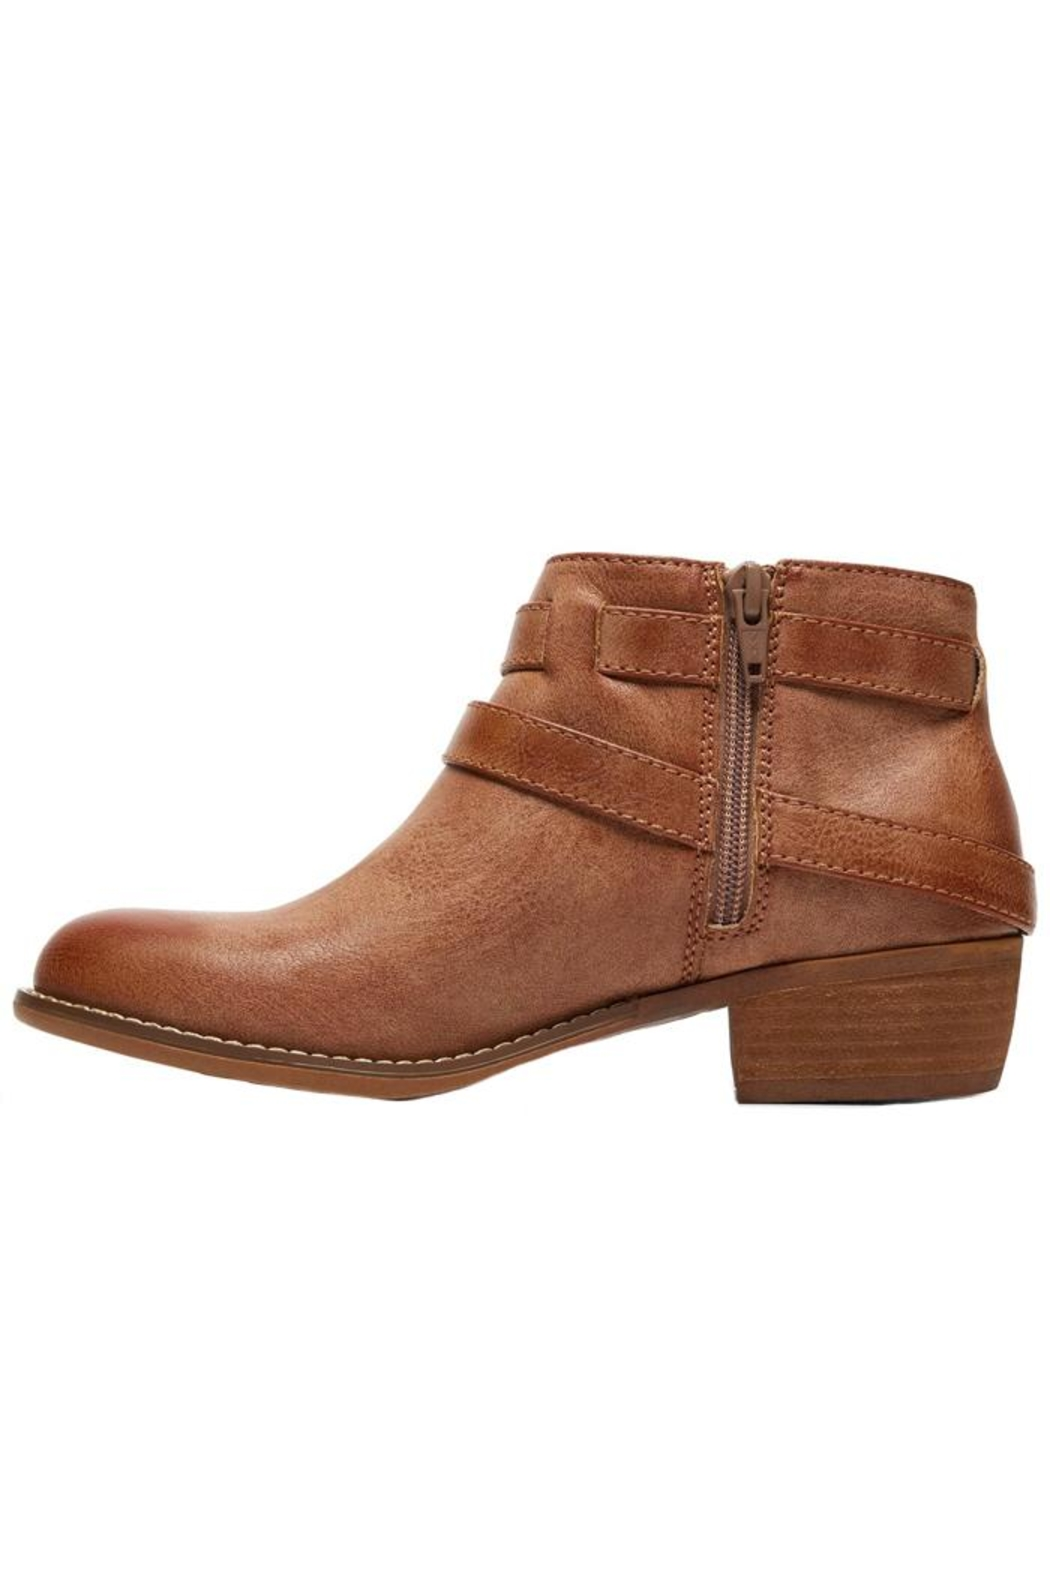 Roxy Abel Bootie - Side Cropped Image